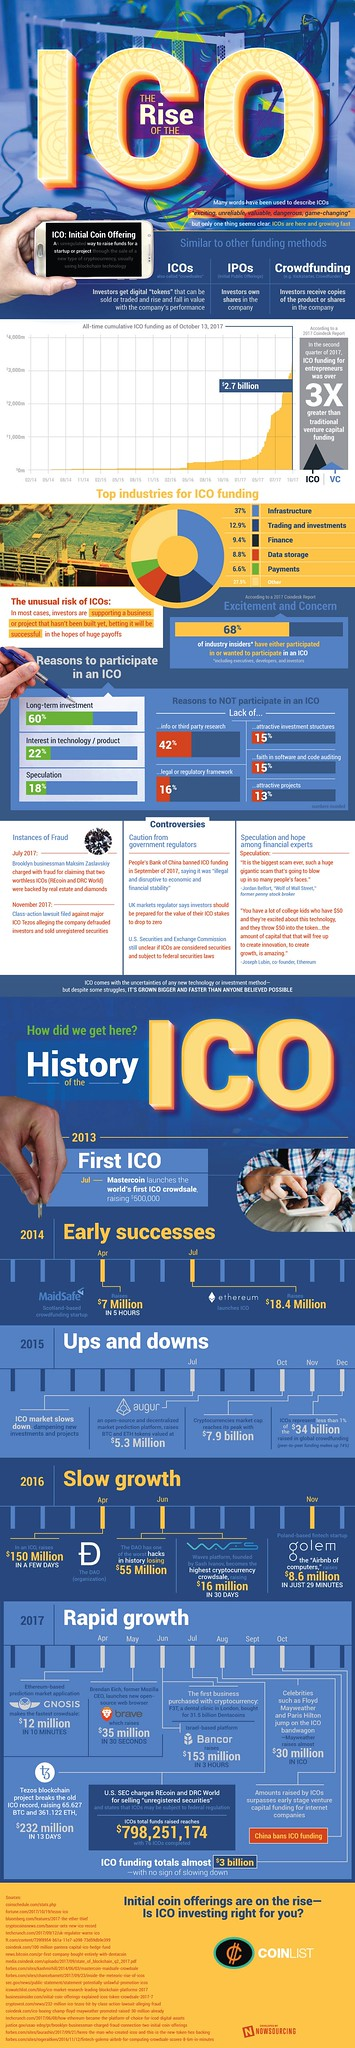 The Rise of ICO